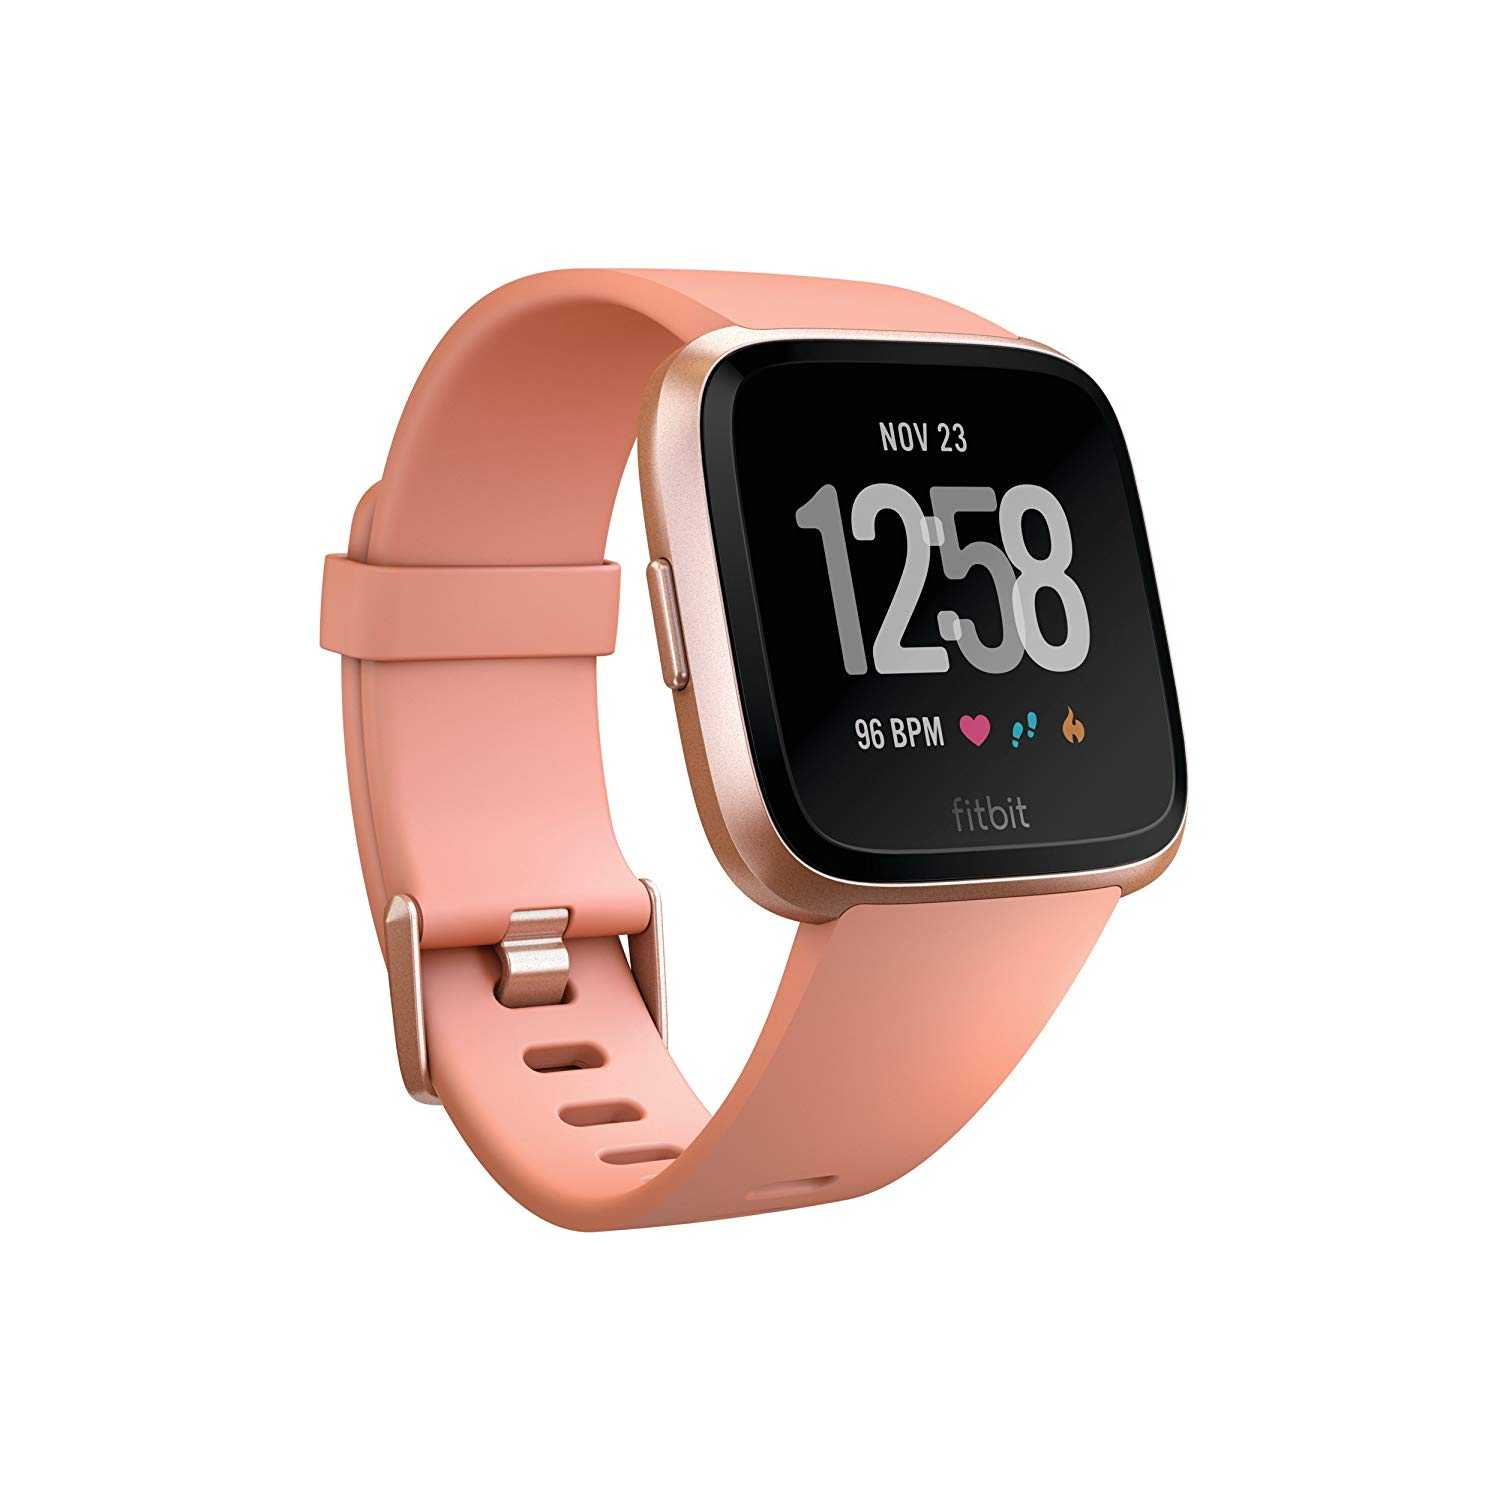 Fitbit Versa Fitness Wristband with Heart Rate Tracker - Peach/Rose Gold Aluminum